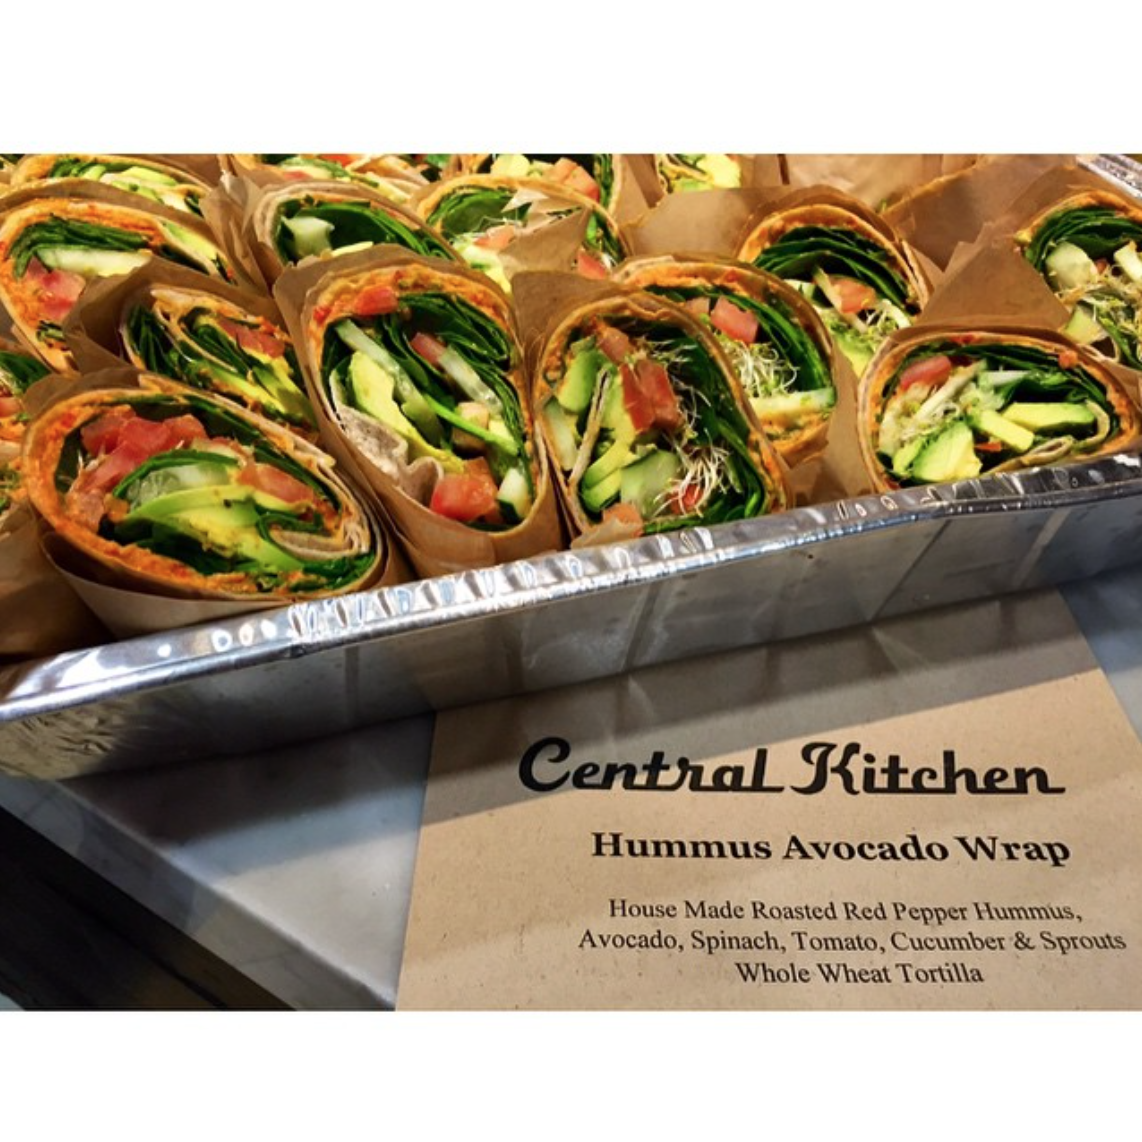 the lorenzo on twitter tonights tastytuesday is hosted by central kitchen come and get it lorenzolifestyle freefood httptcodpcj523pwg - Central Kitchen Lorenzo